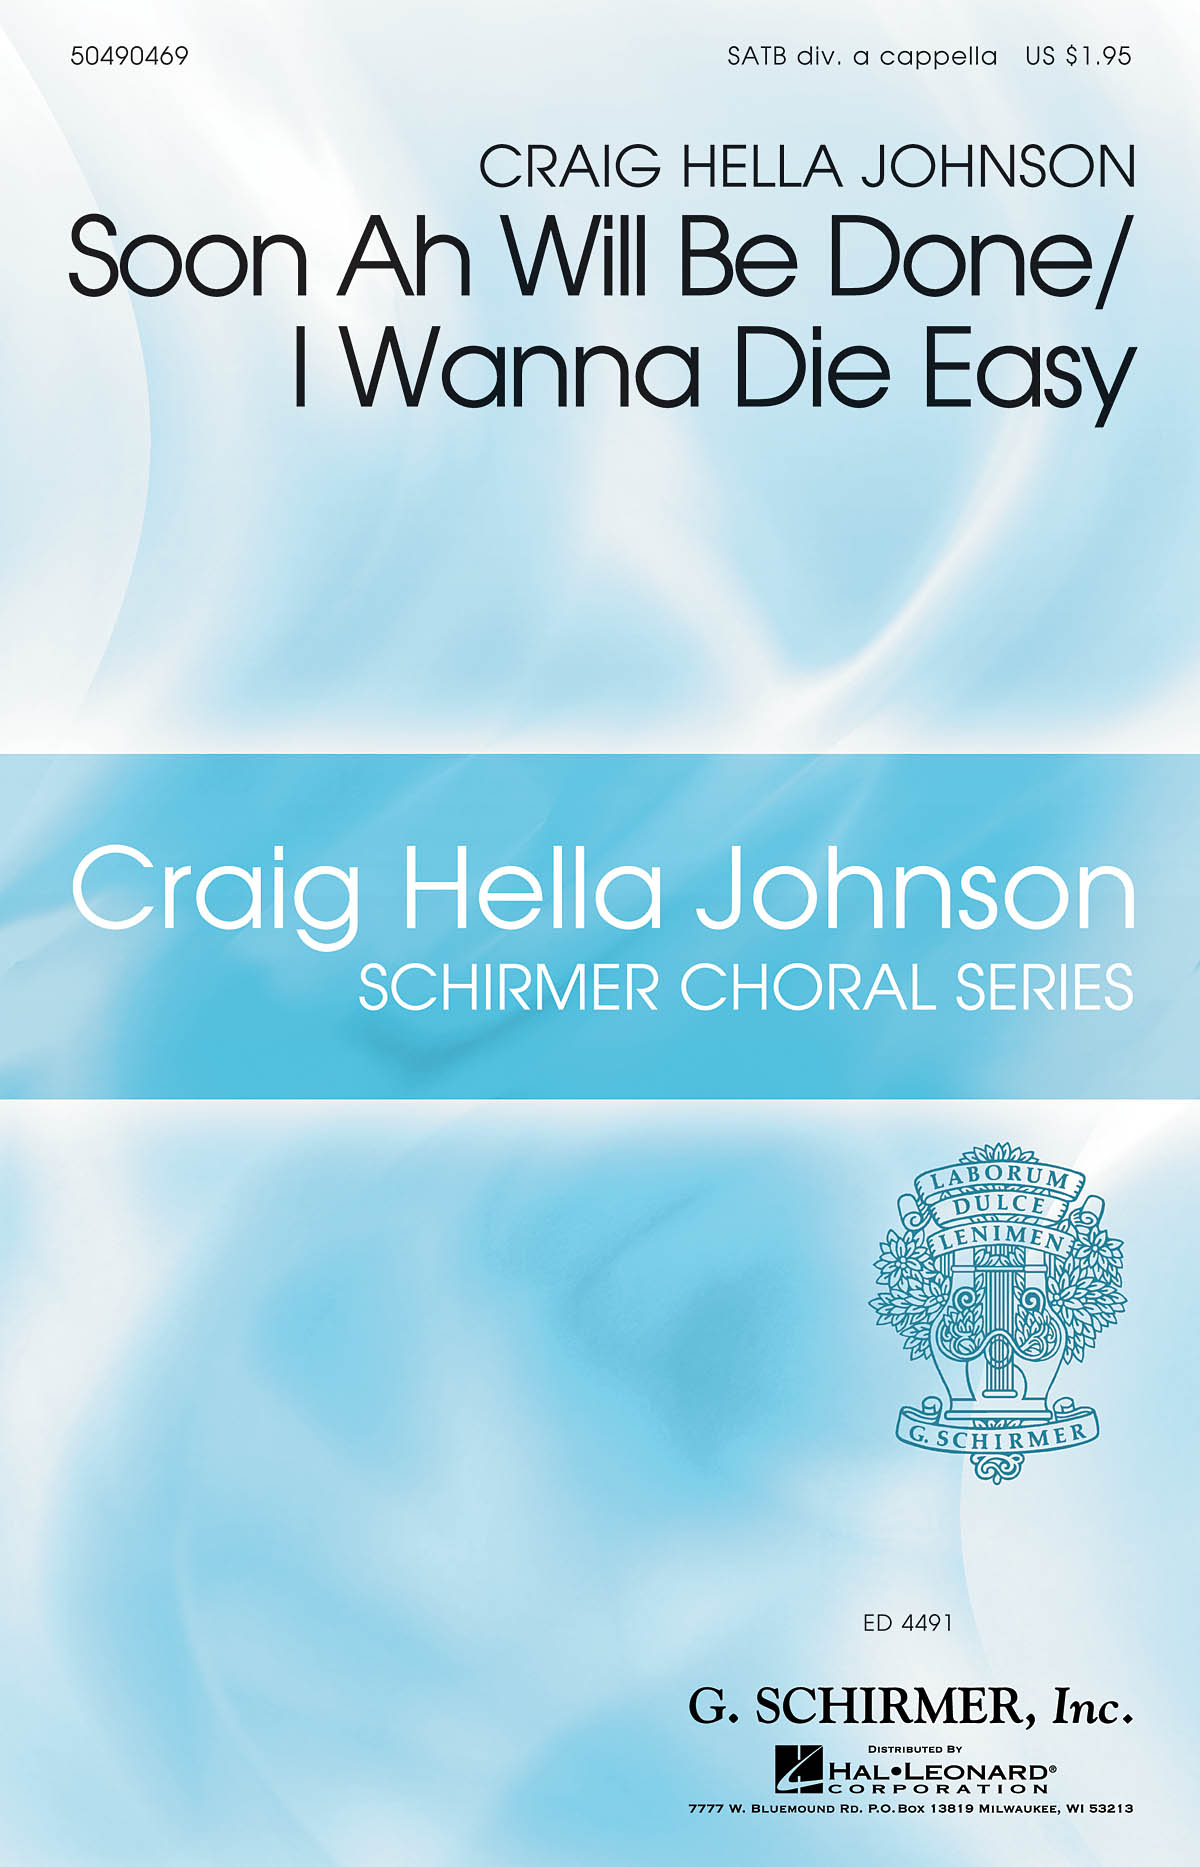 Soon Ah will be done/I wanna die easy: SATB: Vocal Score